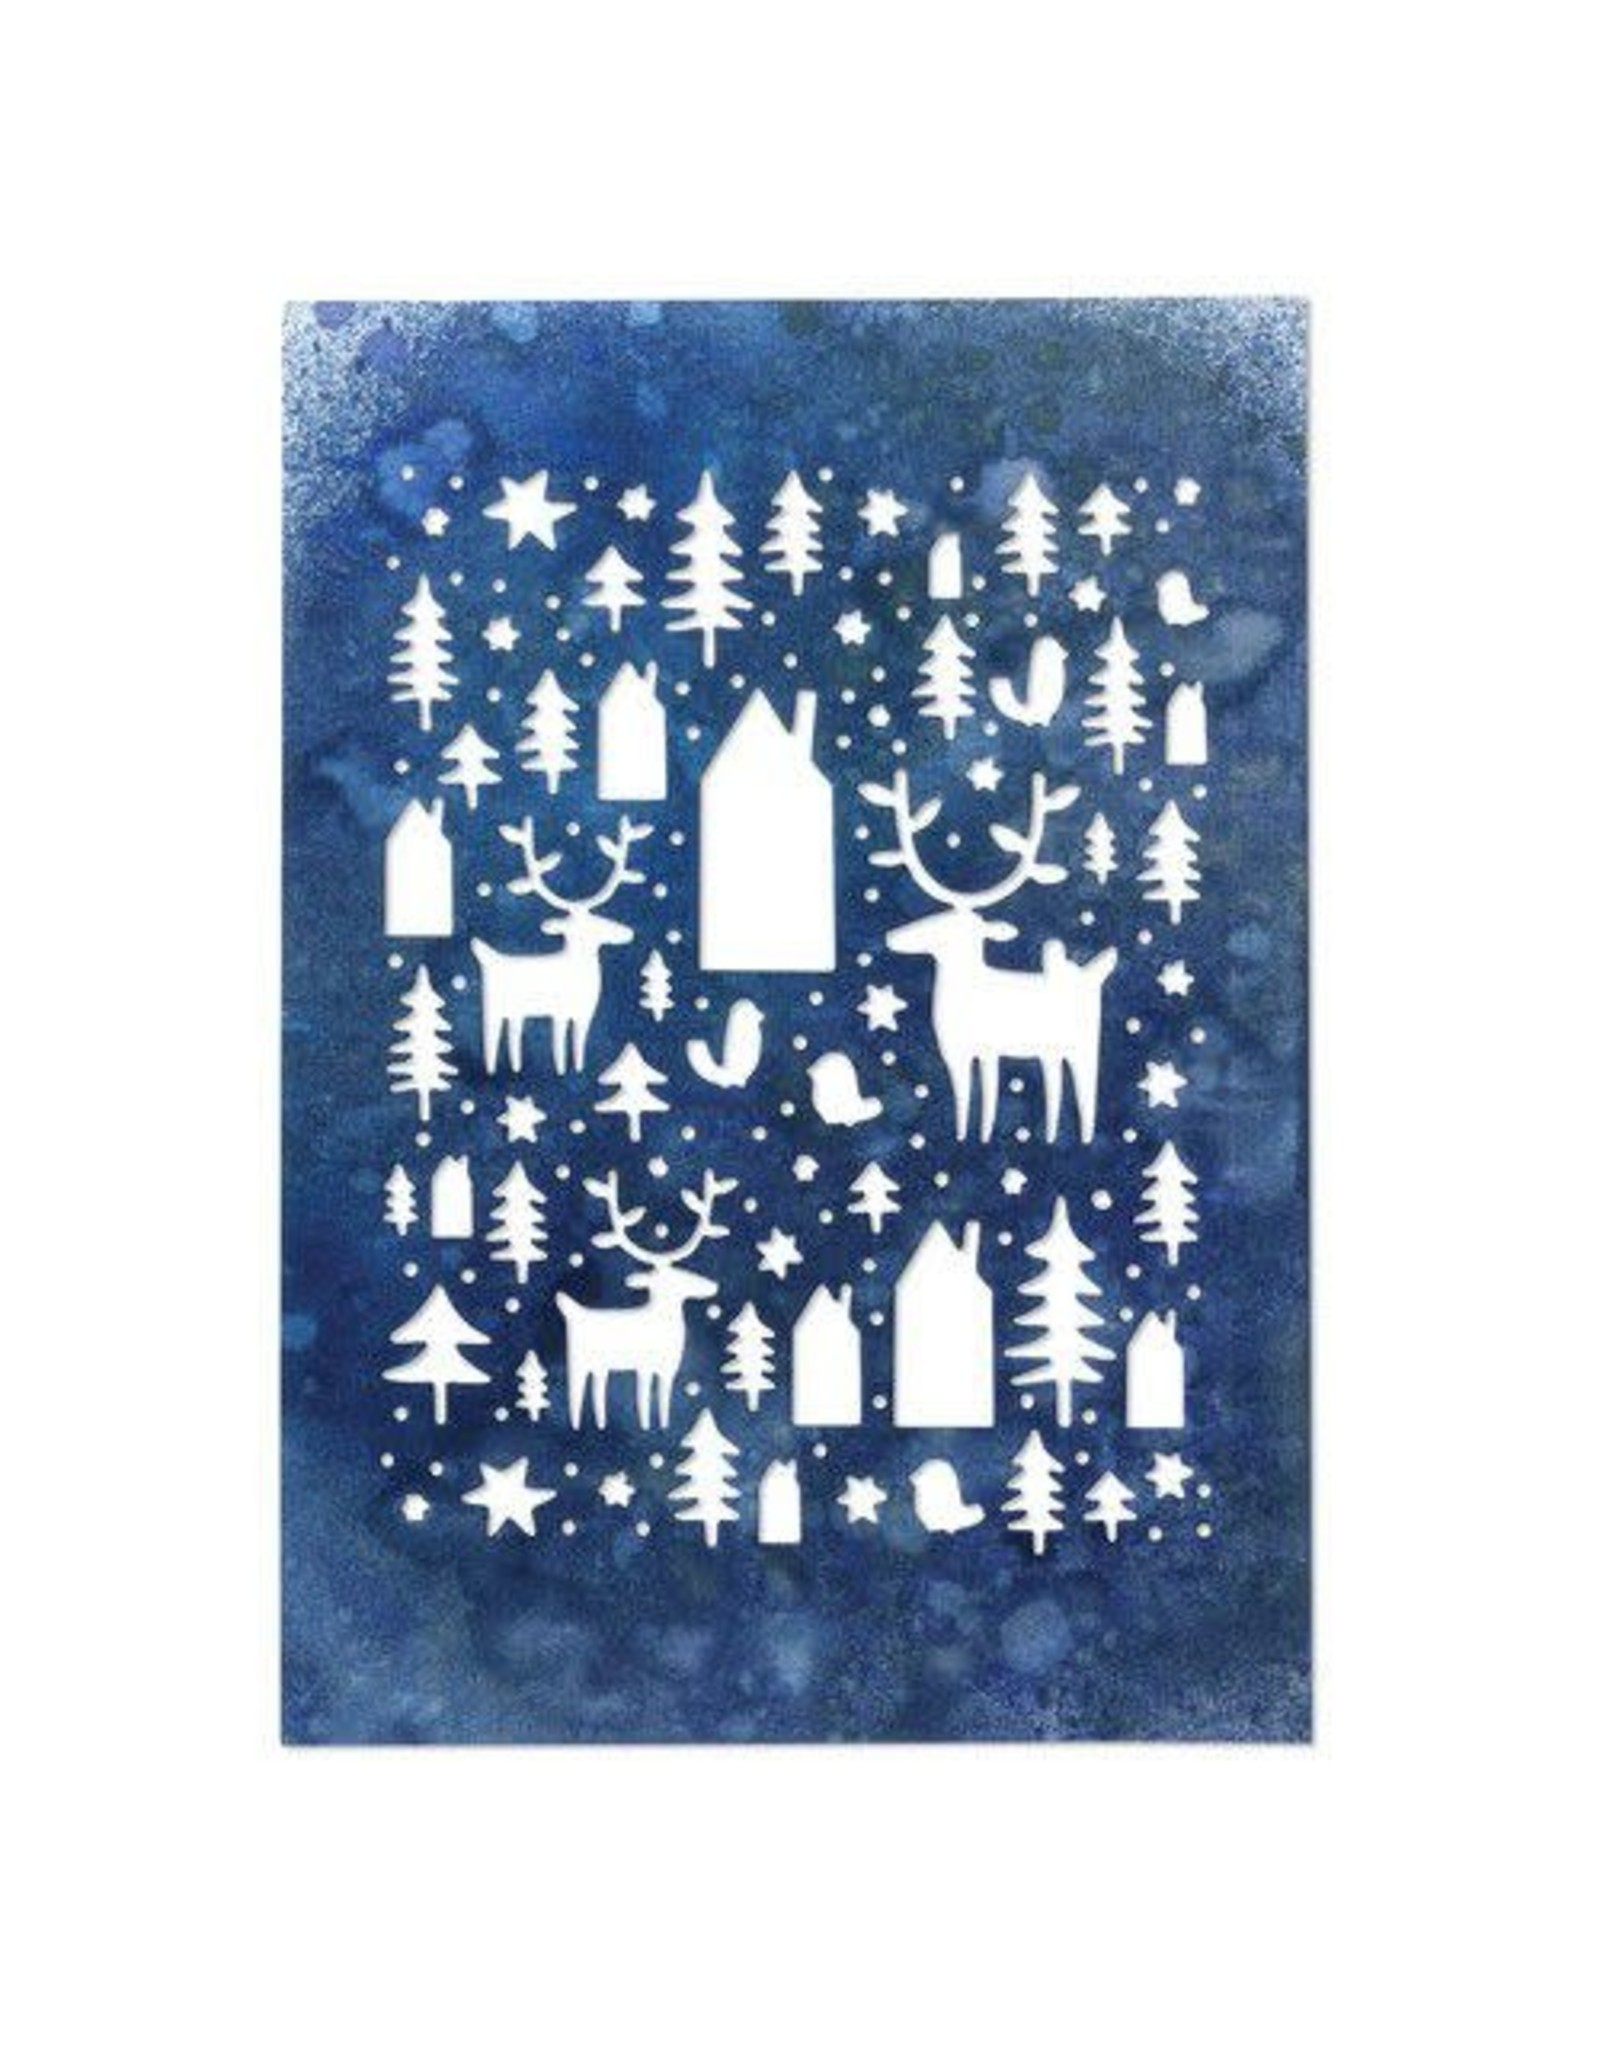 Sizzix Sizzix Thinlits Die - Nordic Winter 664199 Tim Holtz